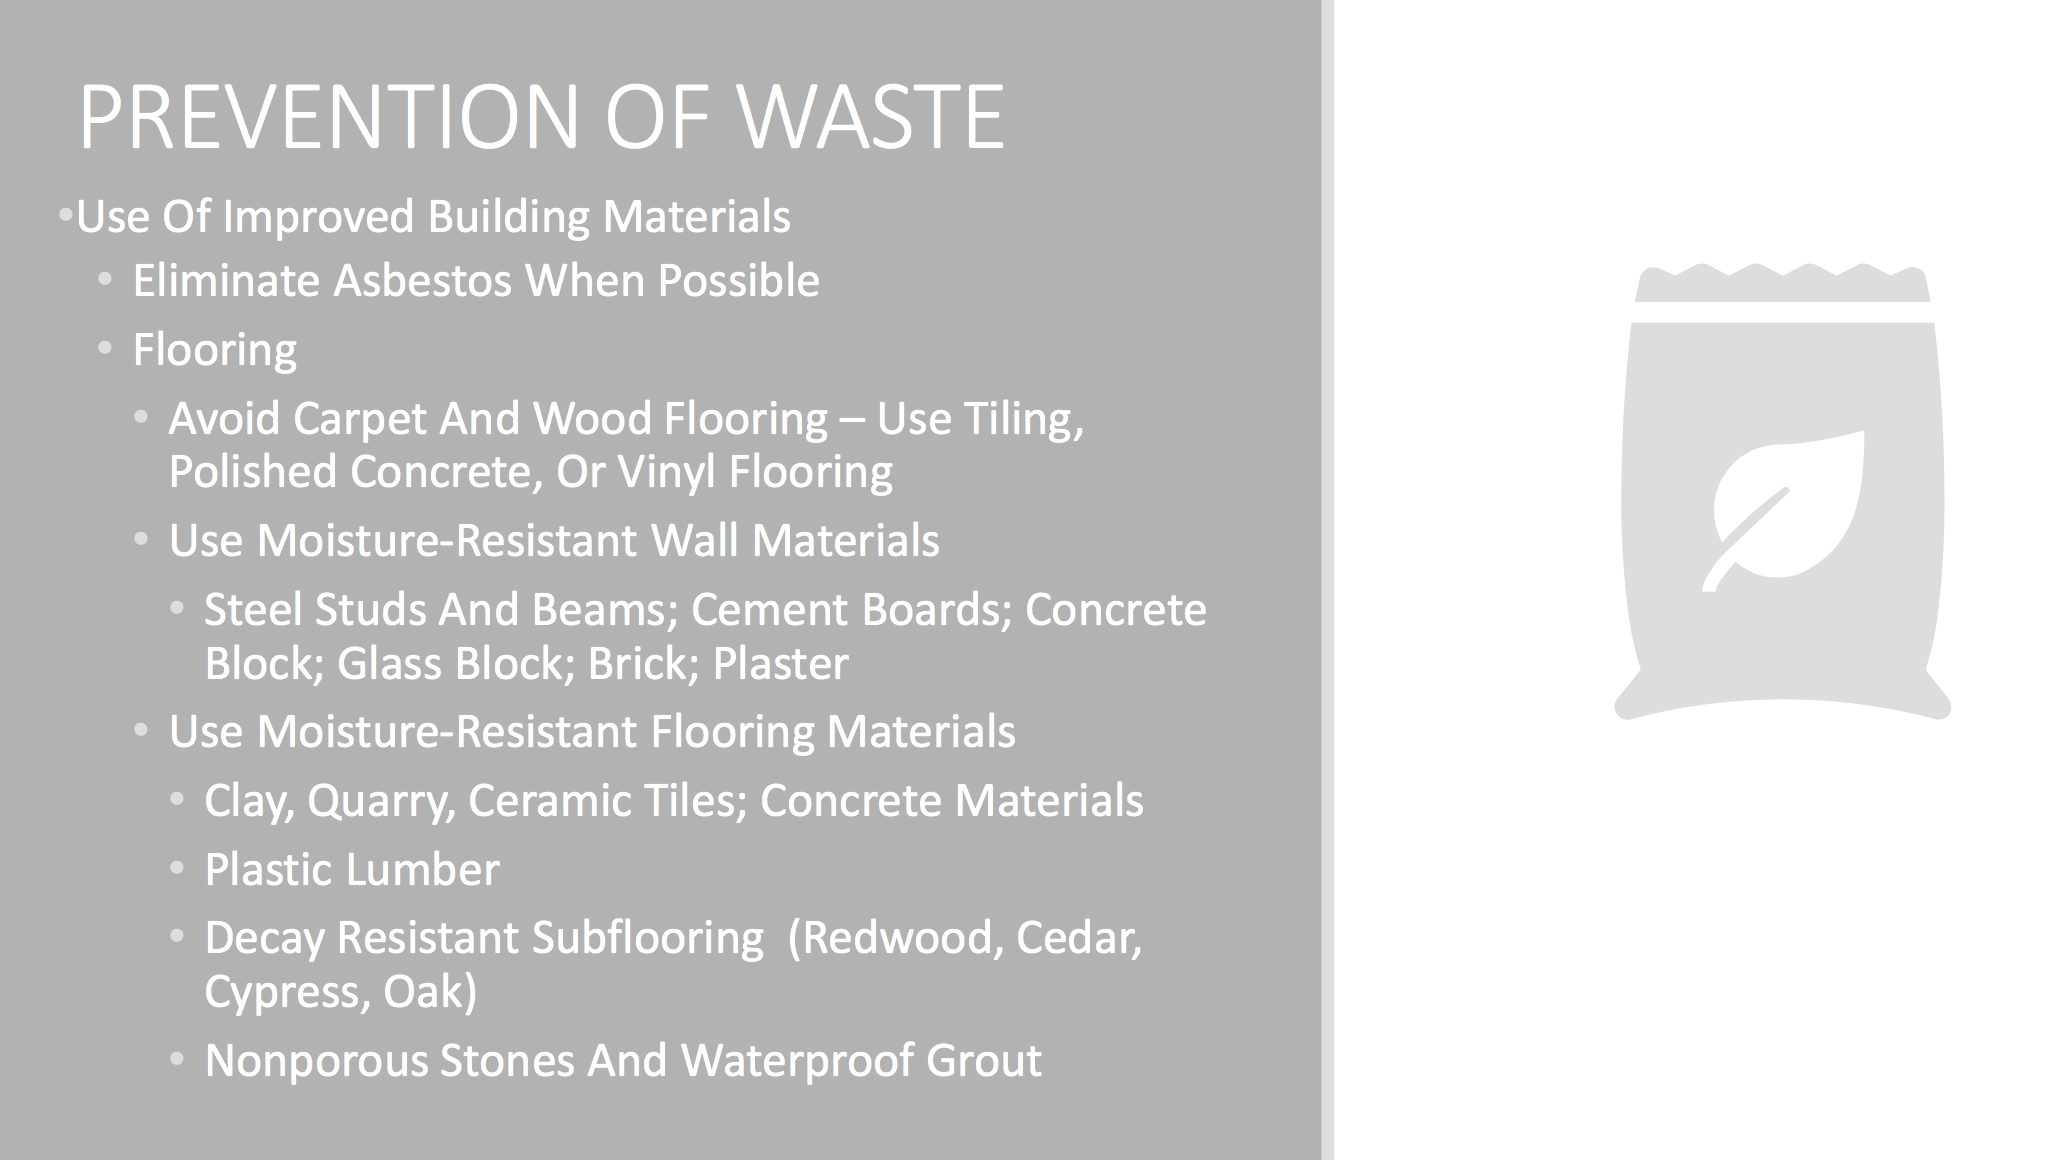 Prevention-of-Waste-Improved-Building-Materials.png